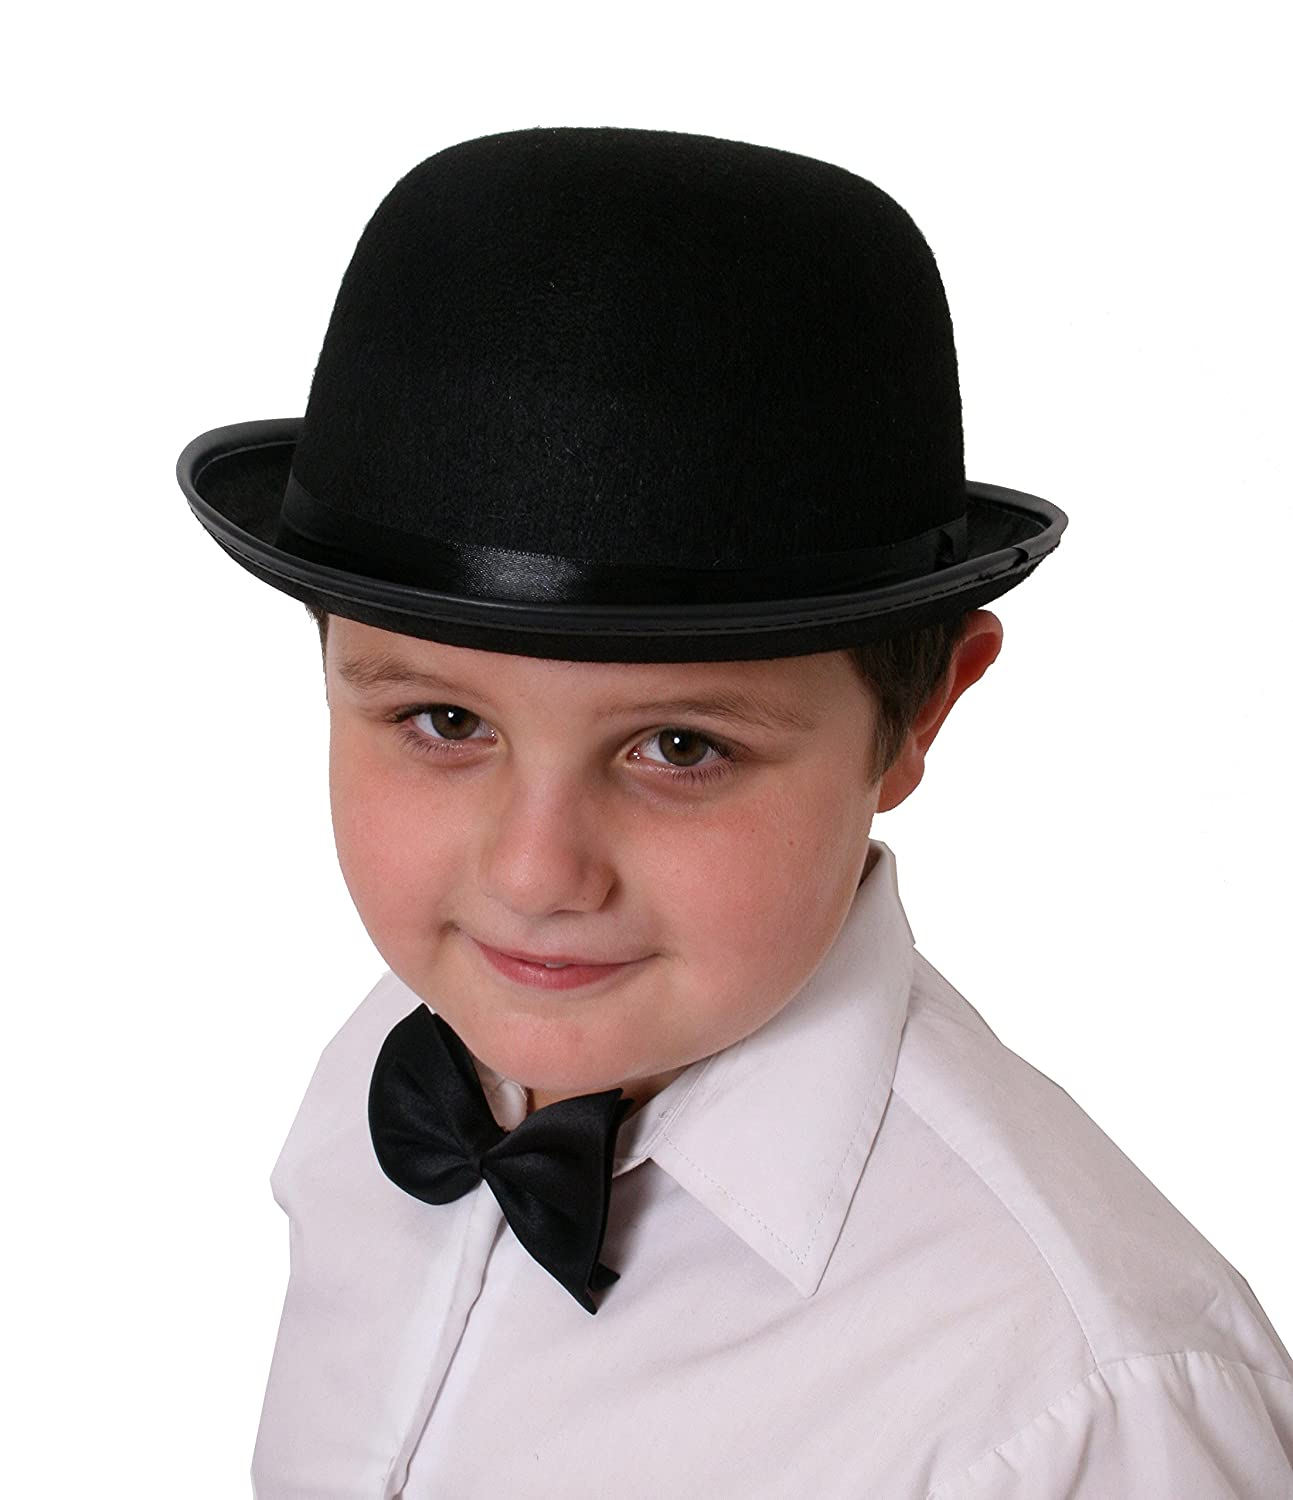 Steampunk Kids Costumes | Girl, Boy, Baby, Toddler Small Bowler hat Black felt 55cm-56cm Ladies or Childrens GENTS FANCY DRESS  AT vintagedancer.com